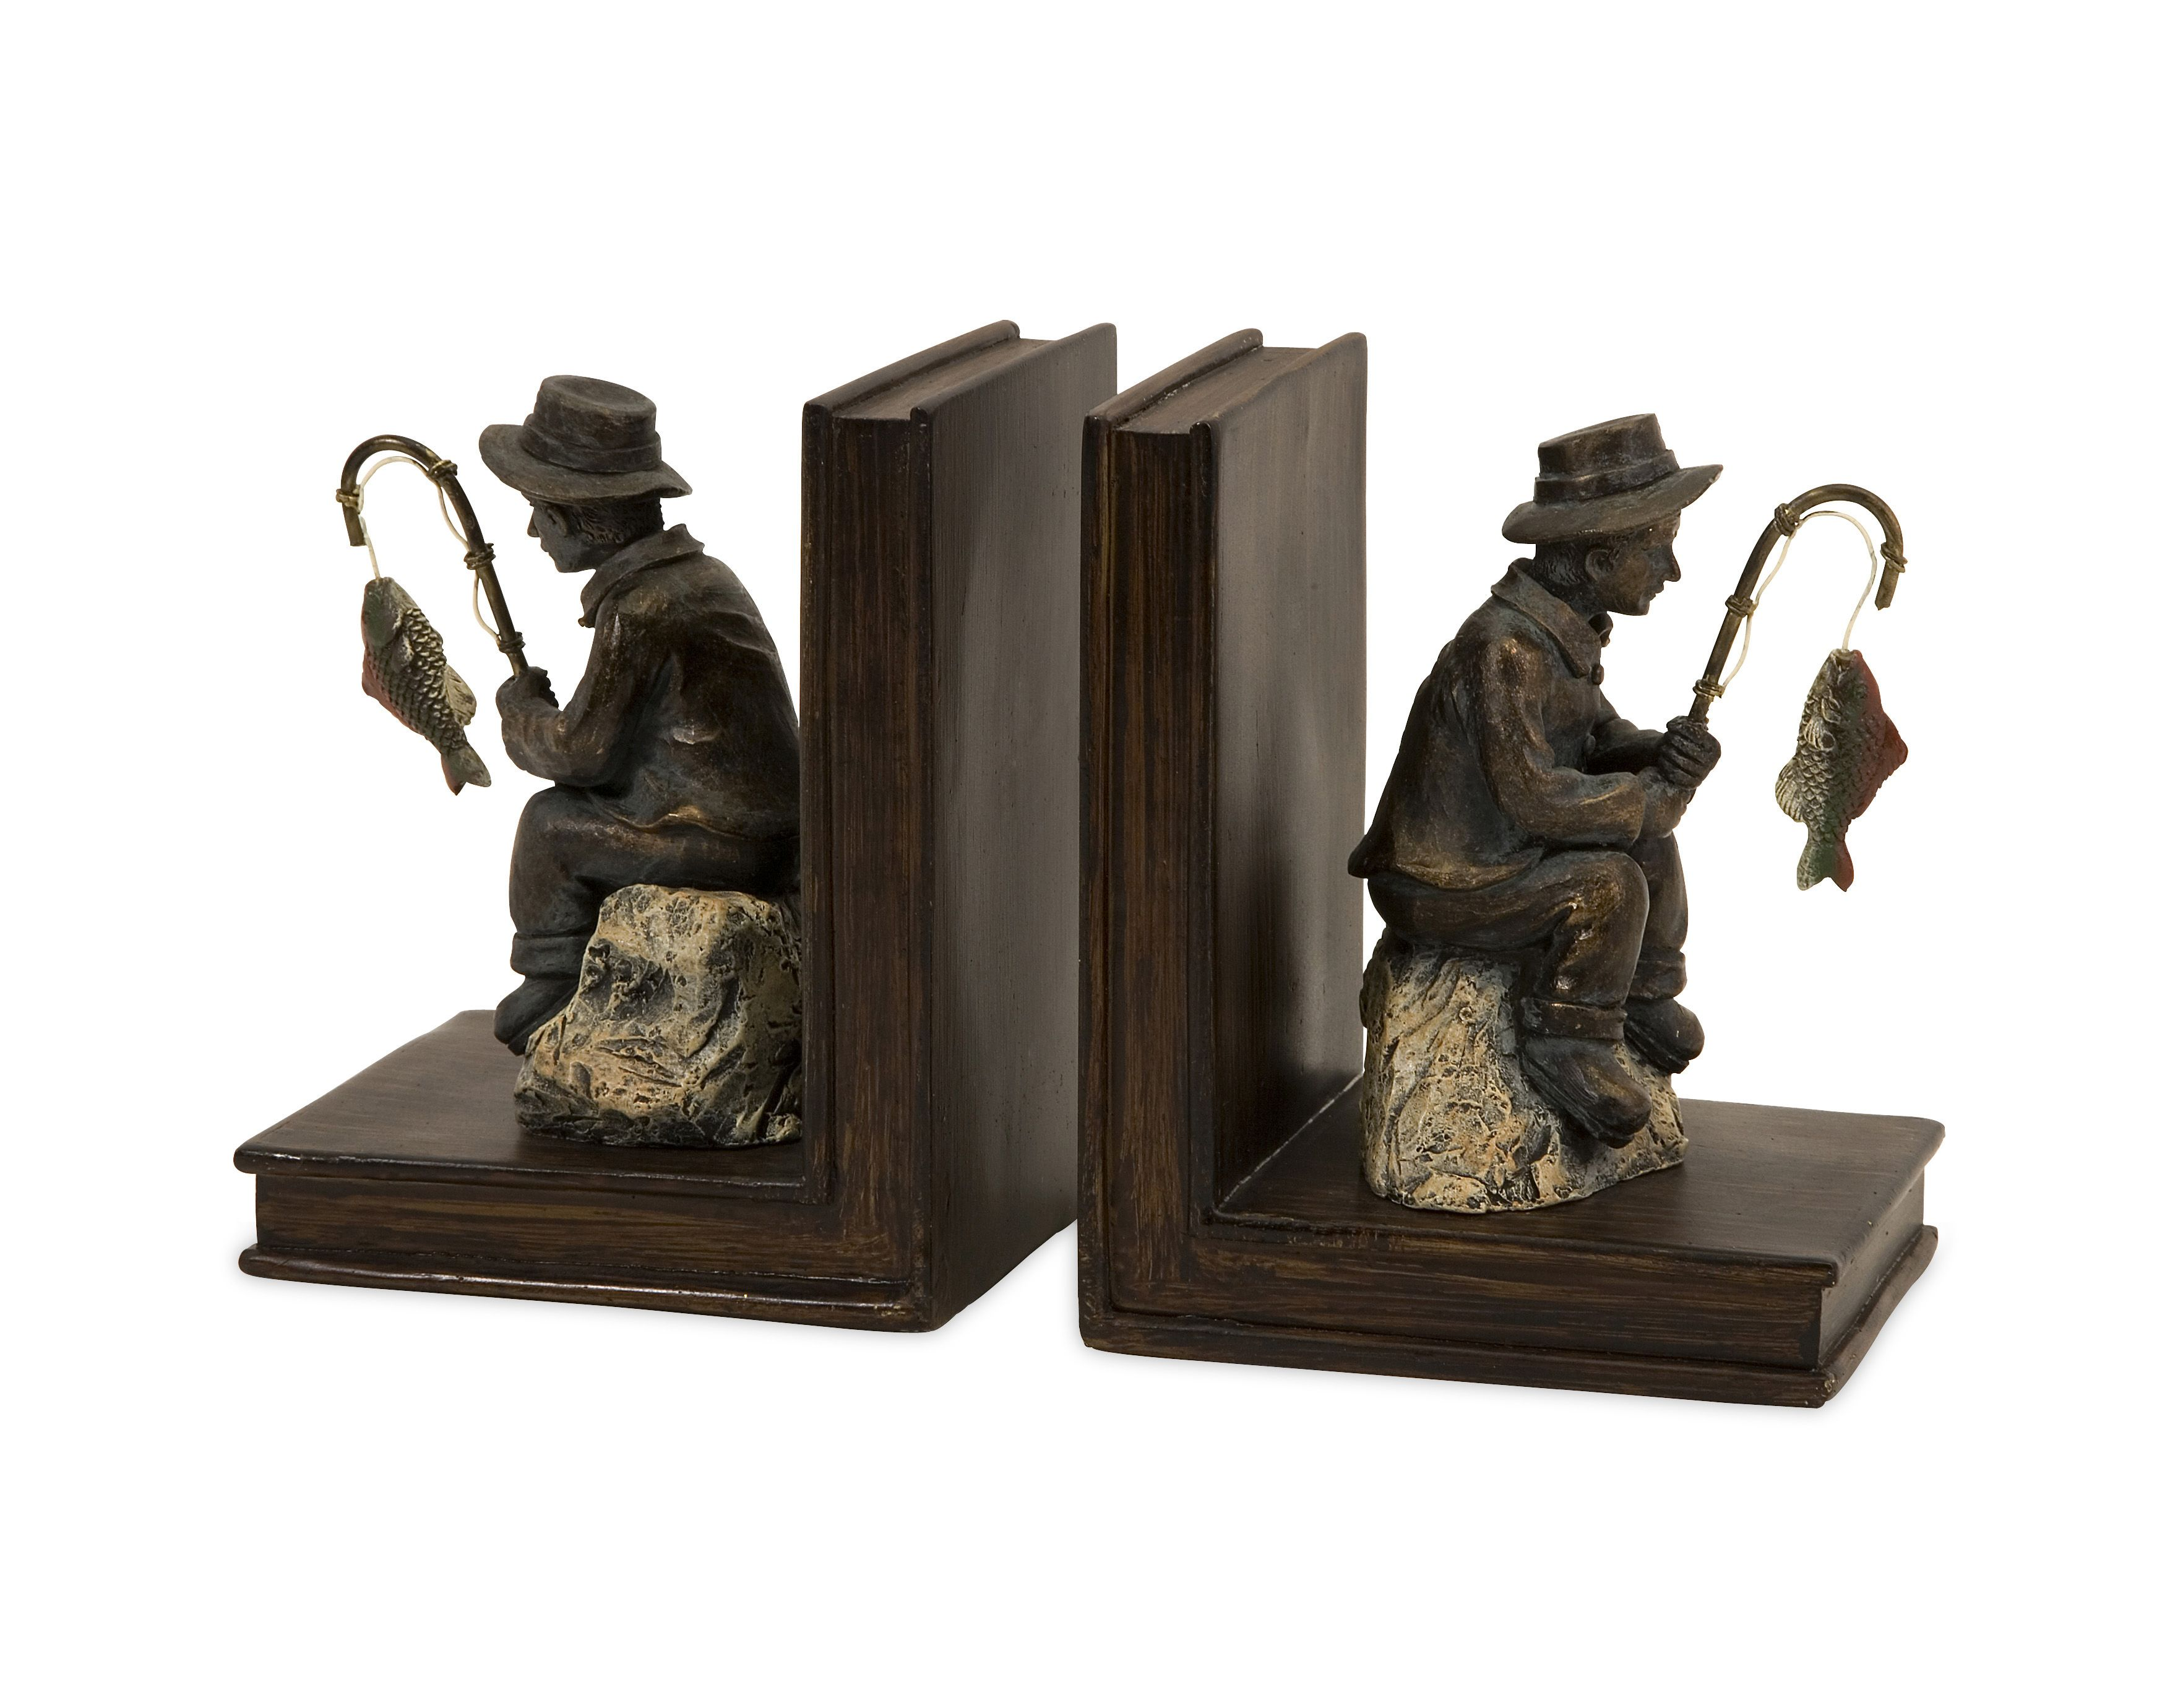 Fisherman Bookends By Oj Commerce With Images Bookends